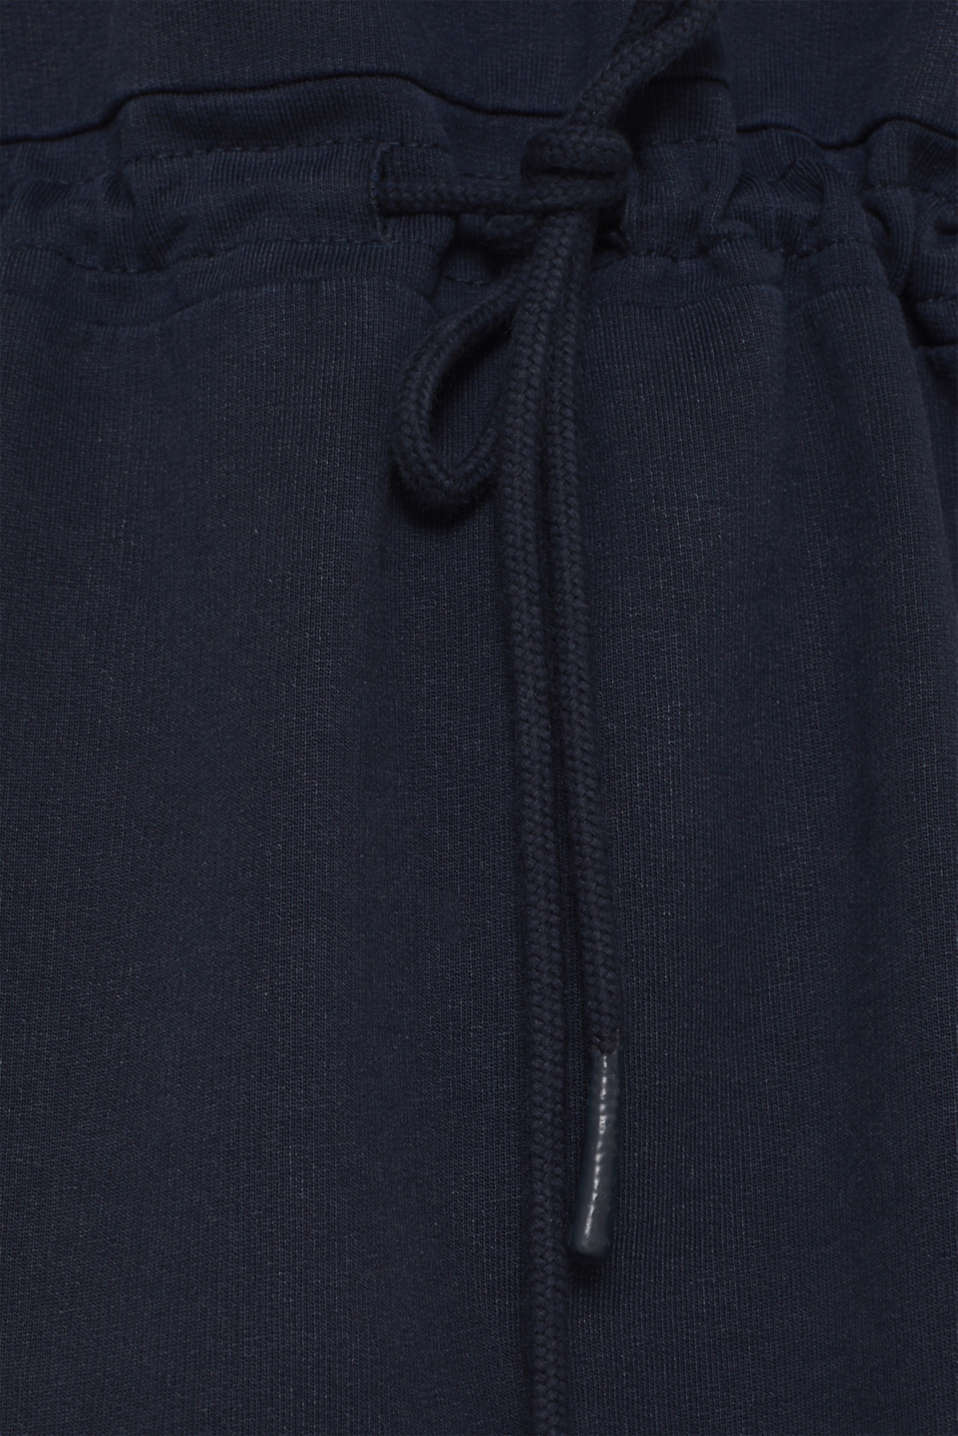 Sweatshirt dress with a drawstring, 100% cotton, NAVY, detail image number 5